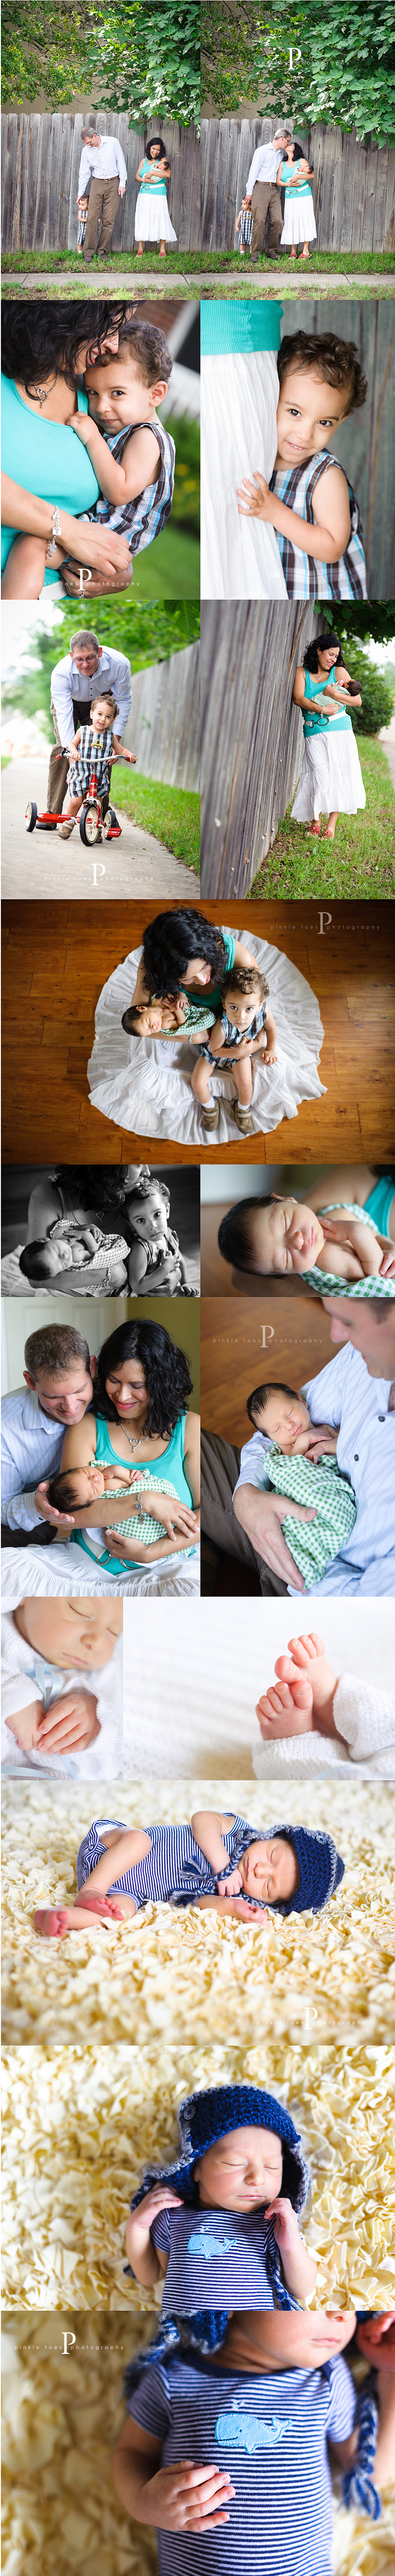 ct-austin-newborn-family-lifestyle-photographer.jpg